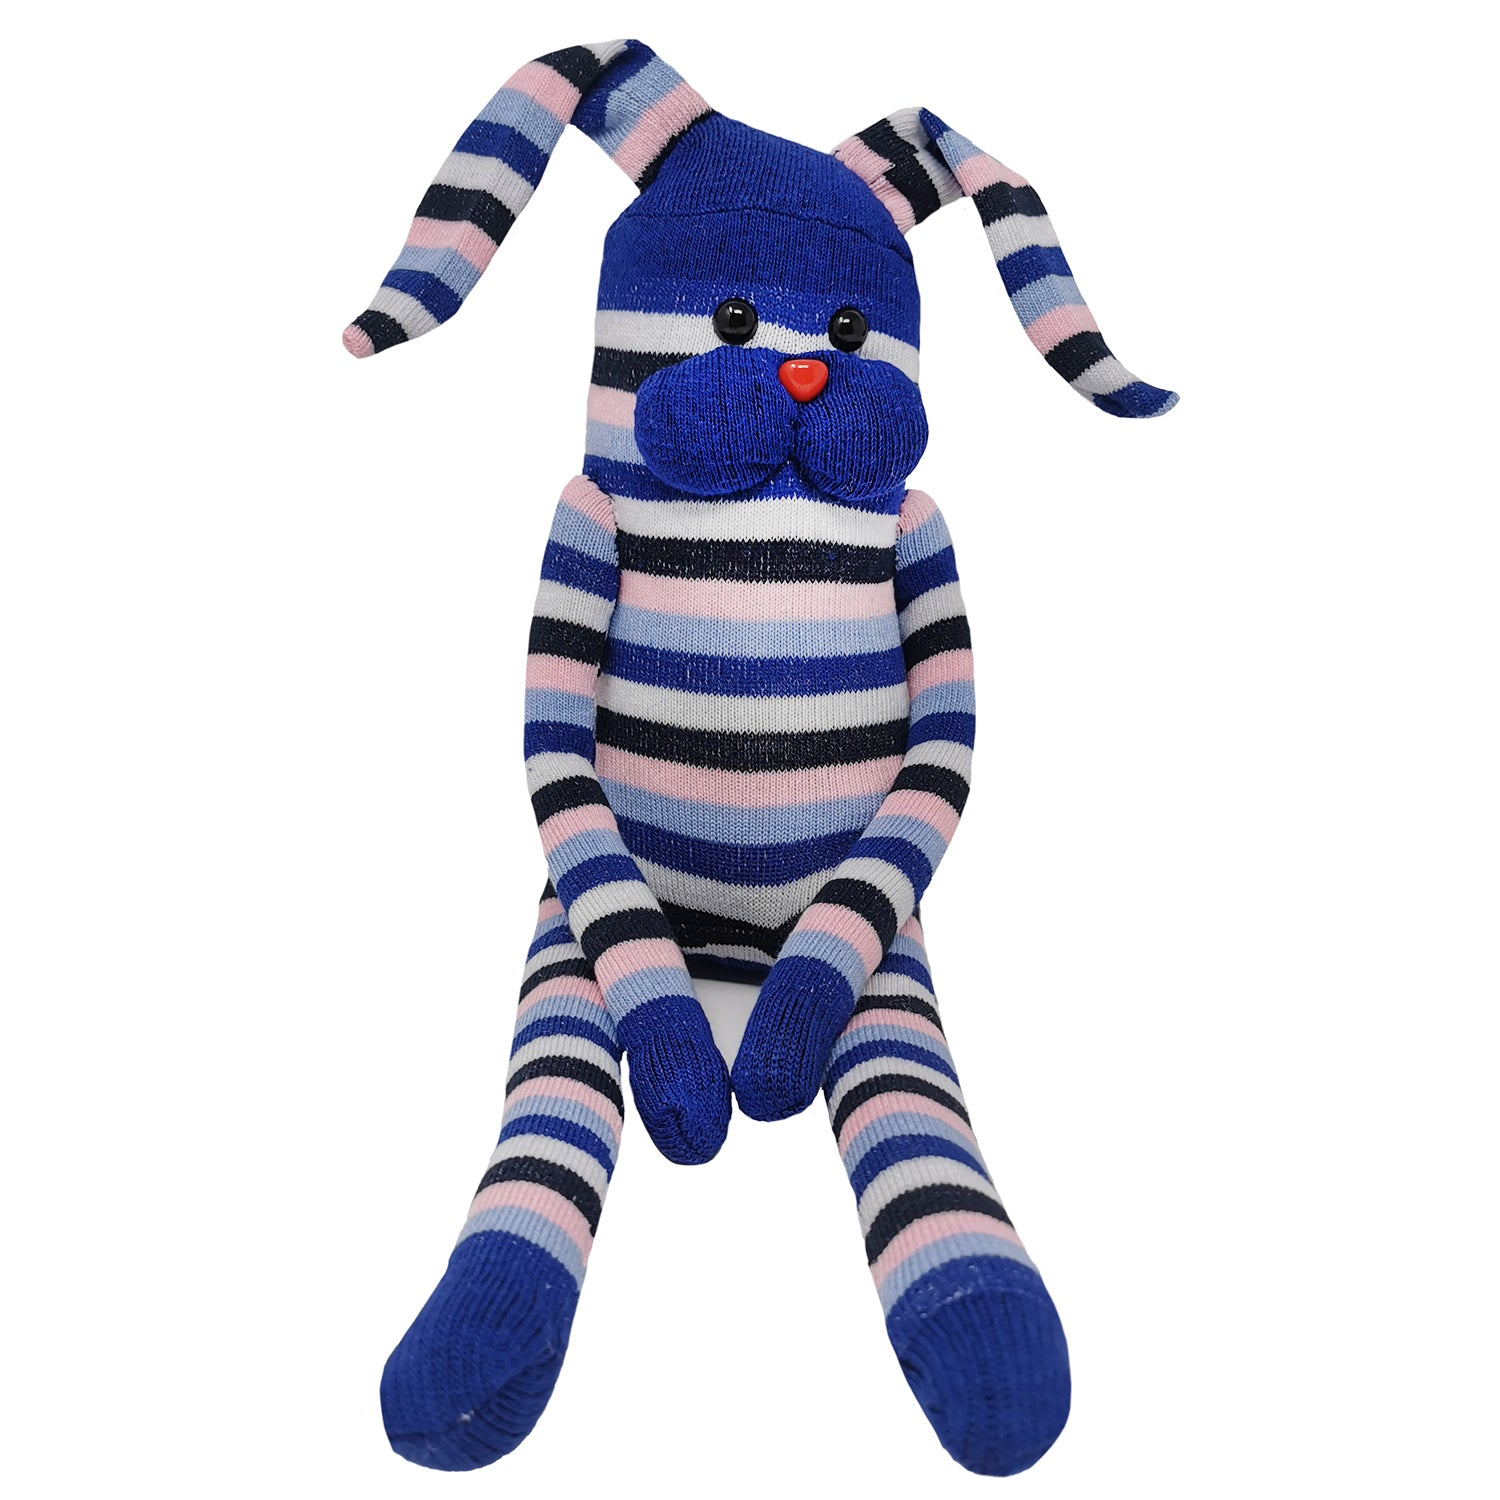 Dark Blue Sock Bunny with pink, black, dark blue and light blue stripes